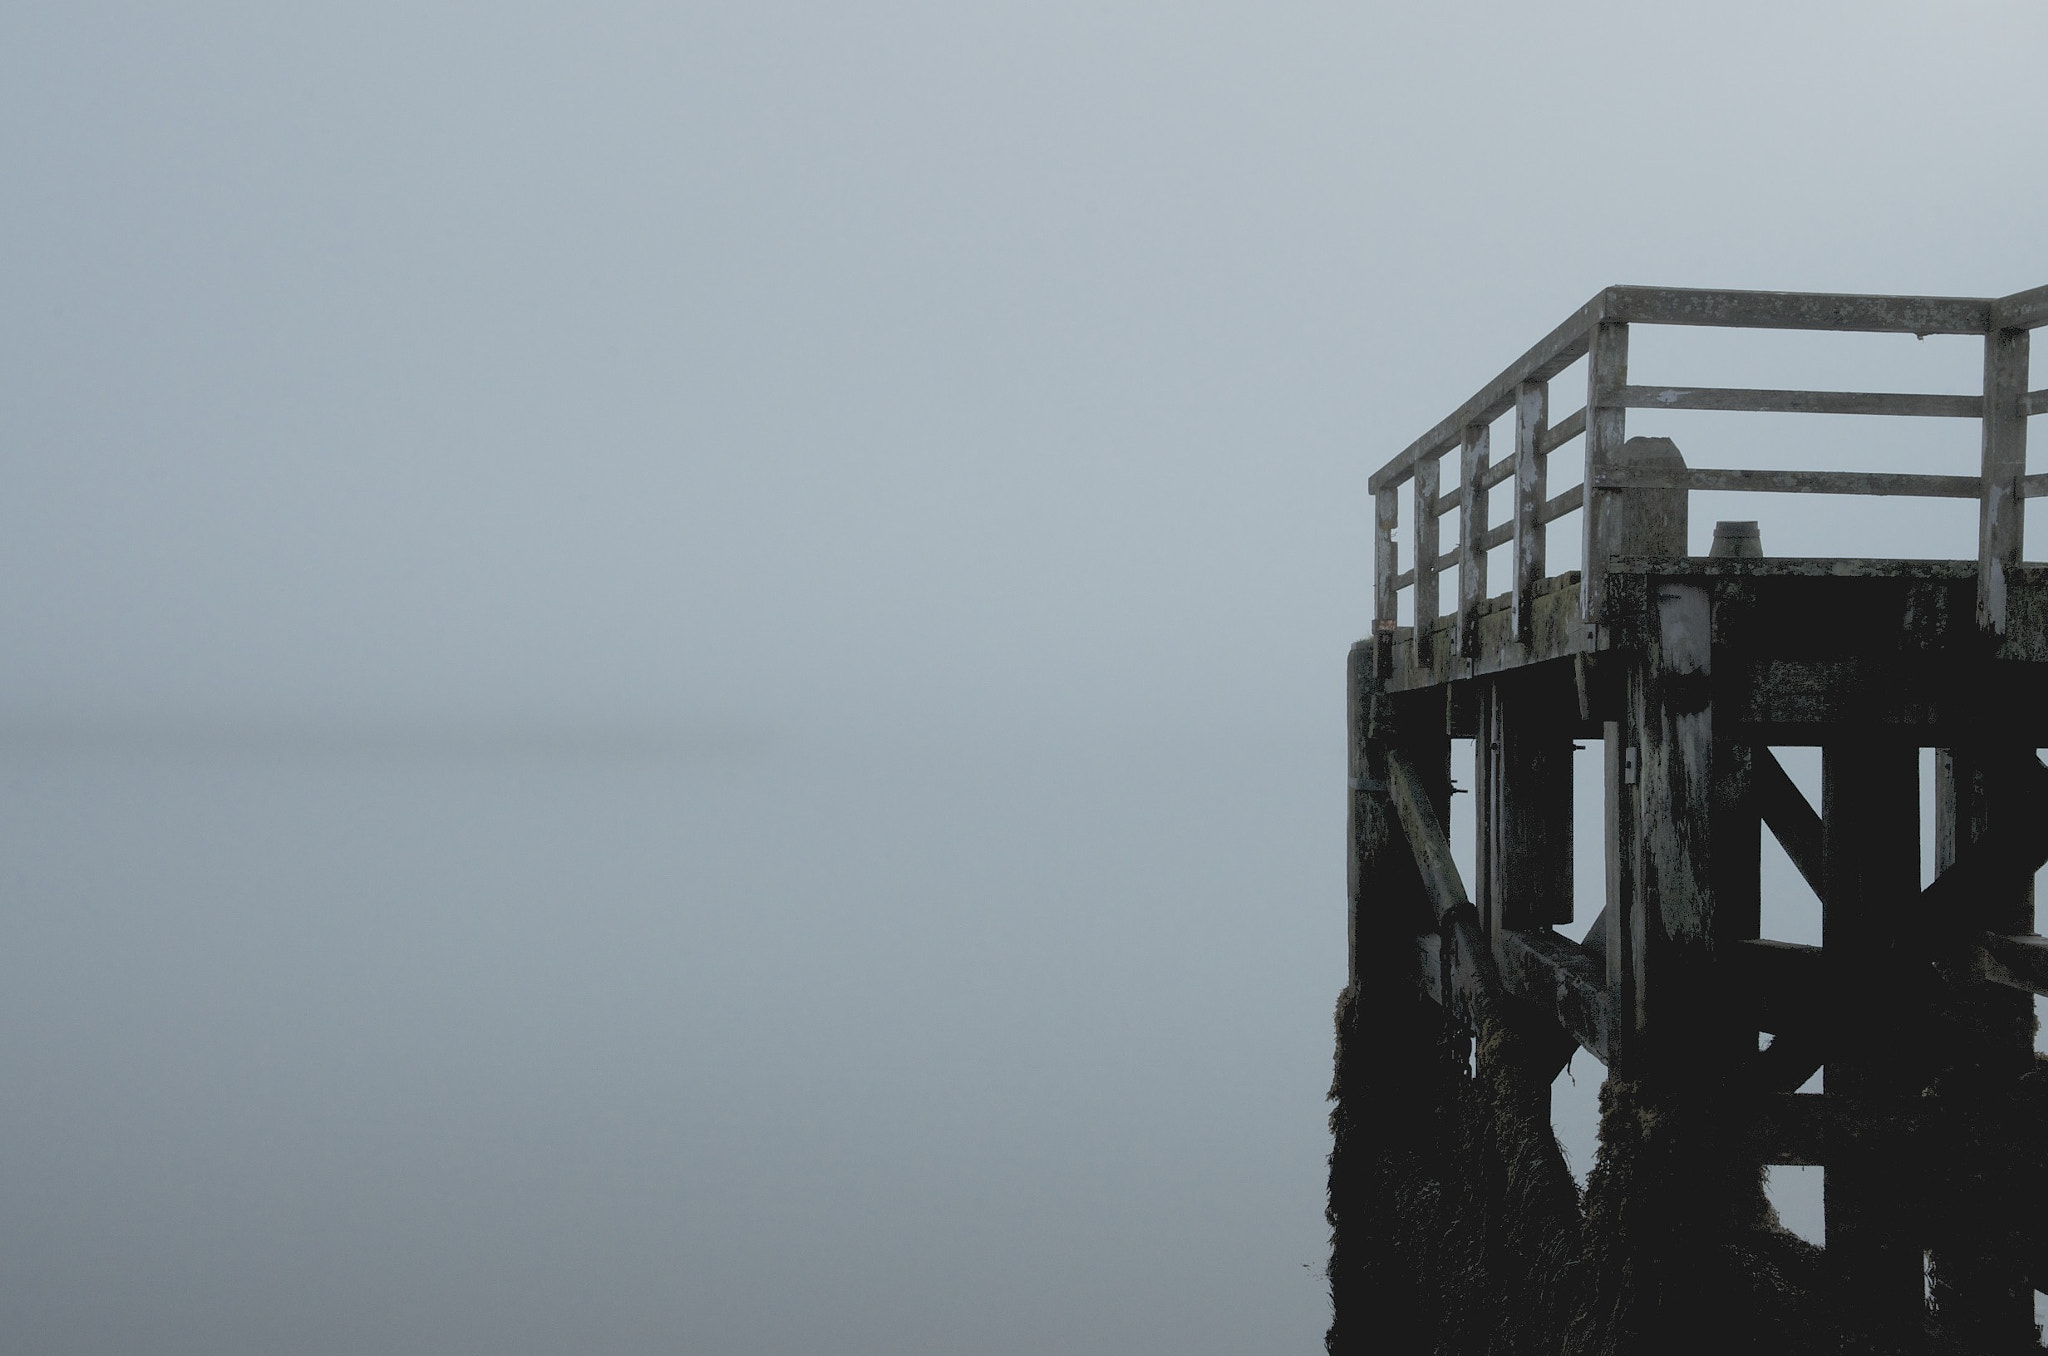 Photograph Misty Morning at Inveraray Pier by Craig MacLeod on 500px